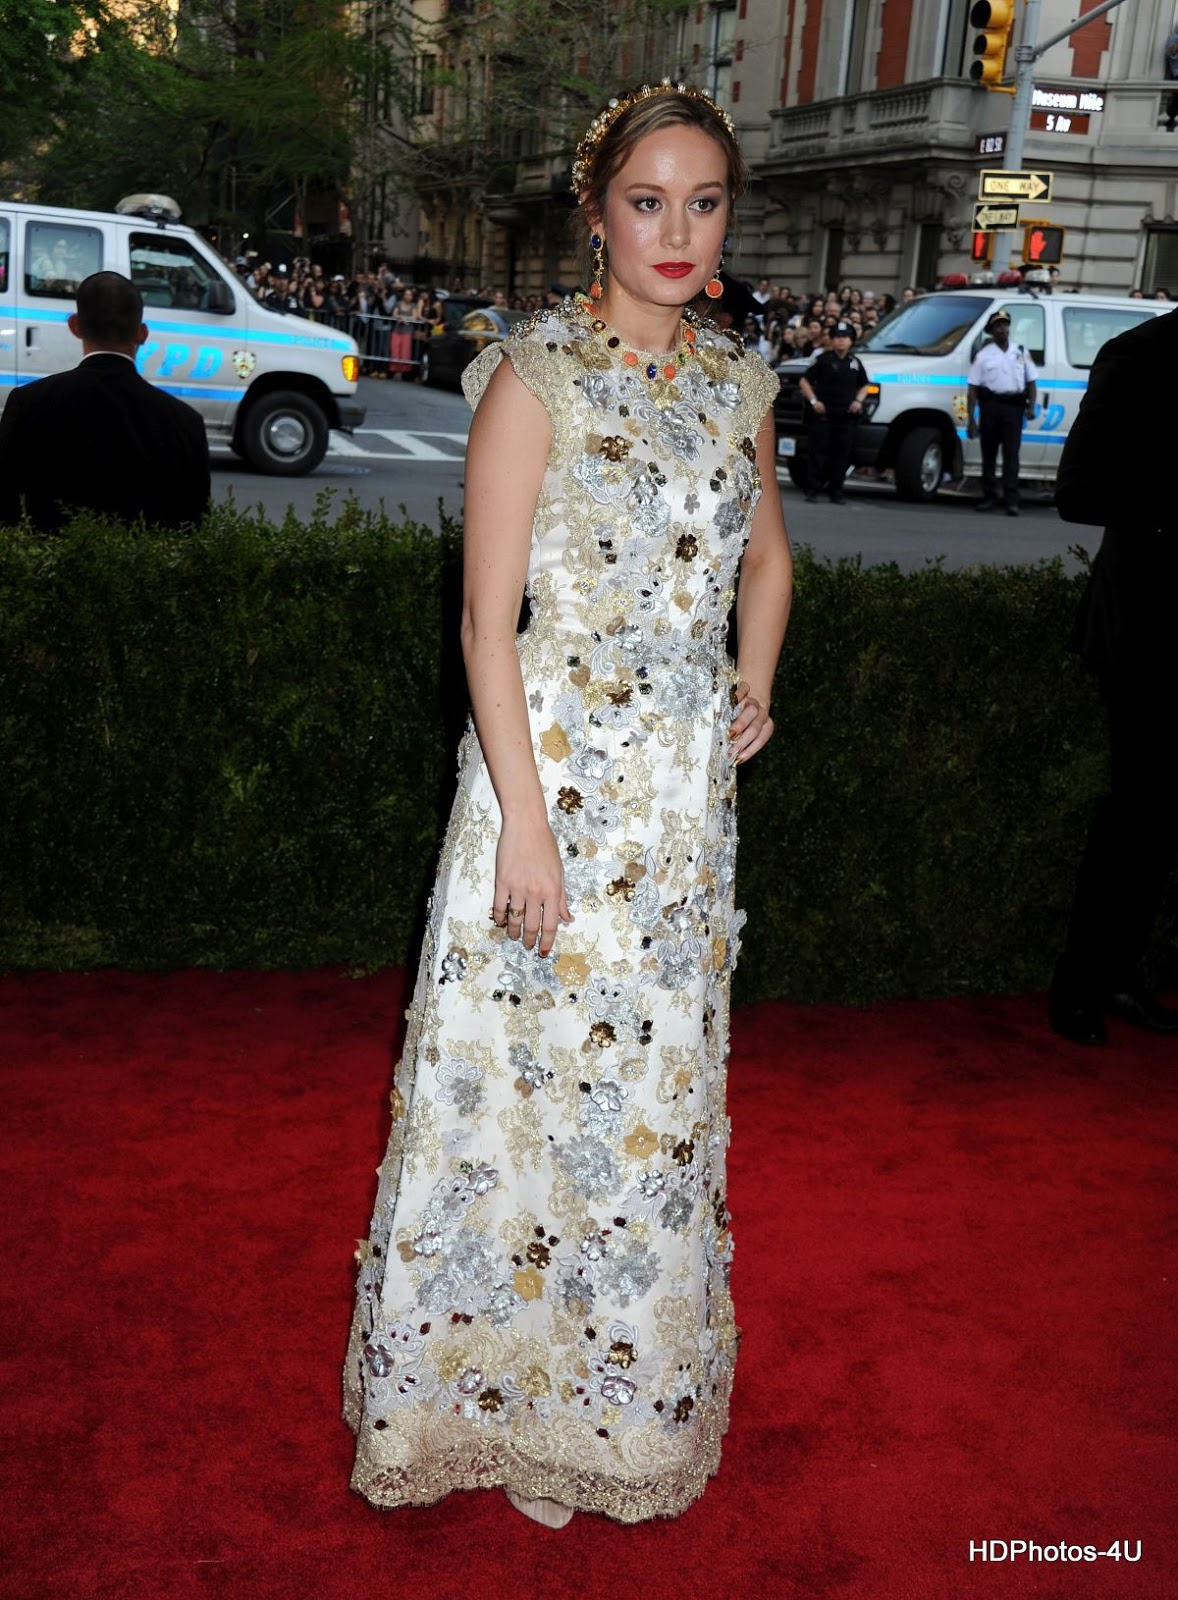 HQ Wallpapers of Brie Larson at MET Gala 2015 in New York